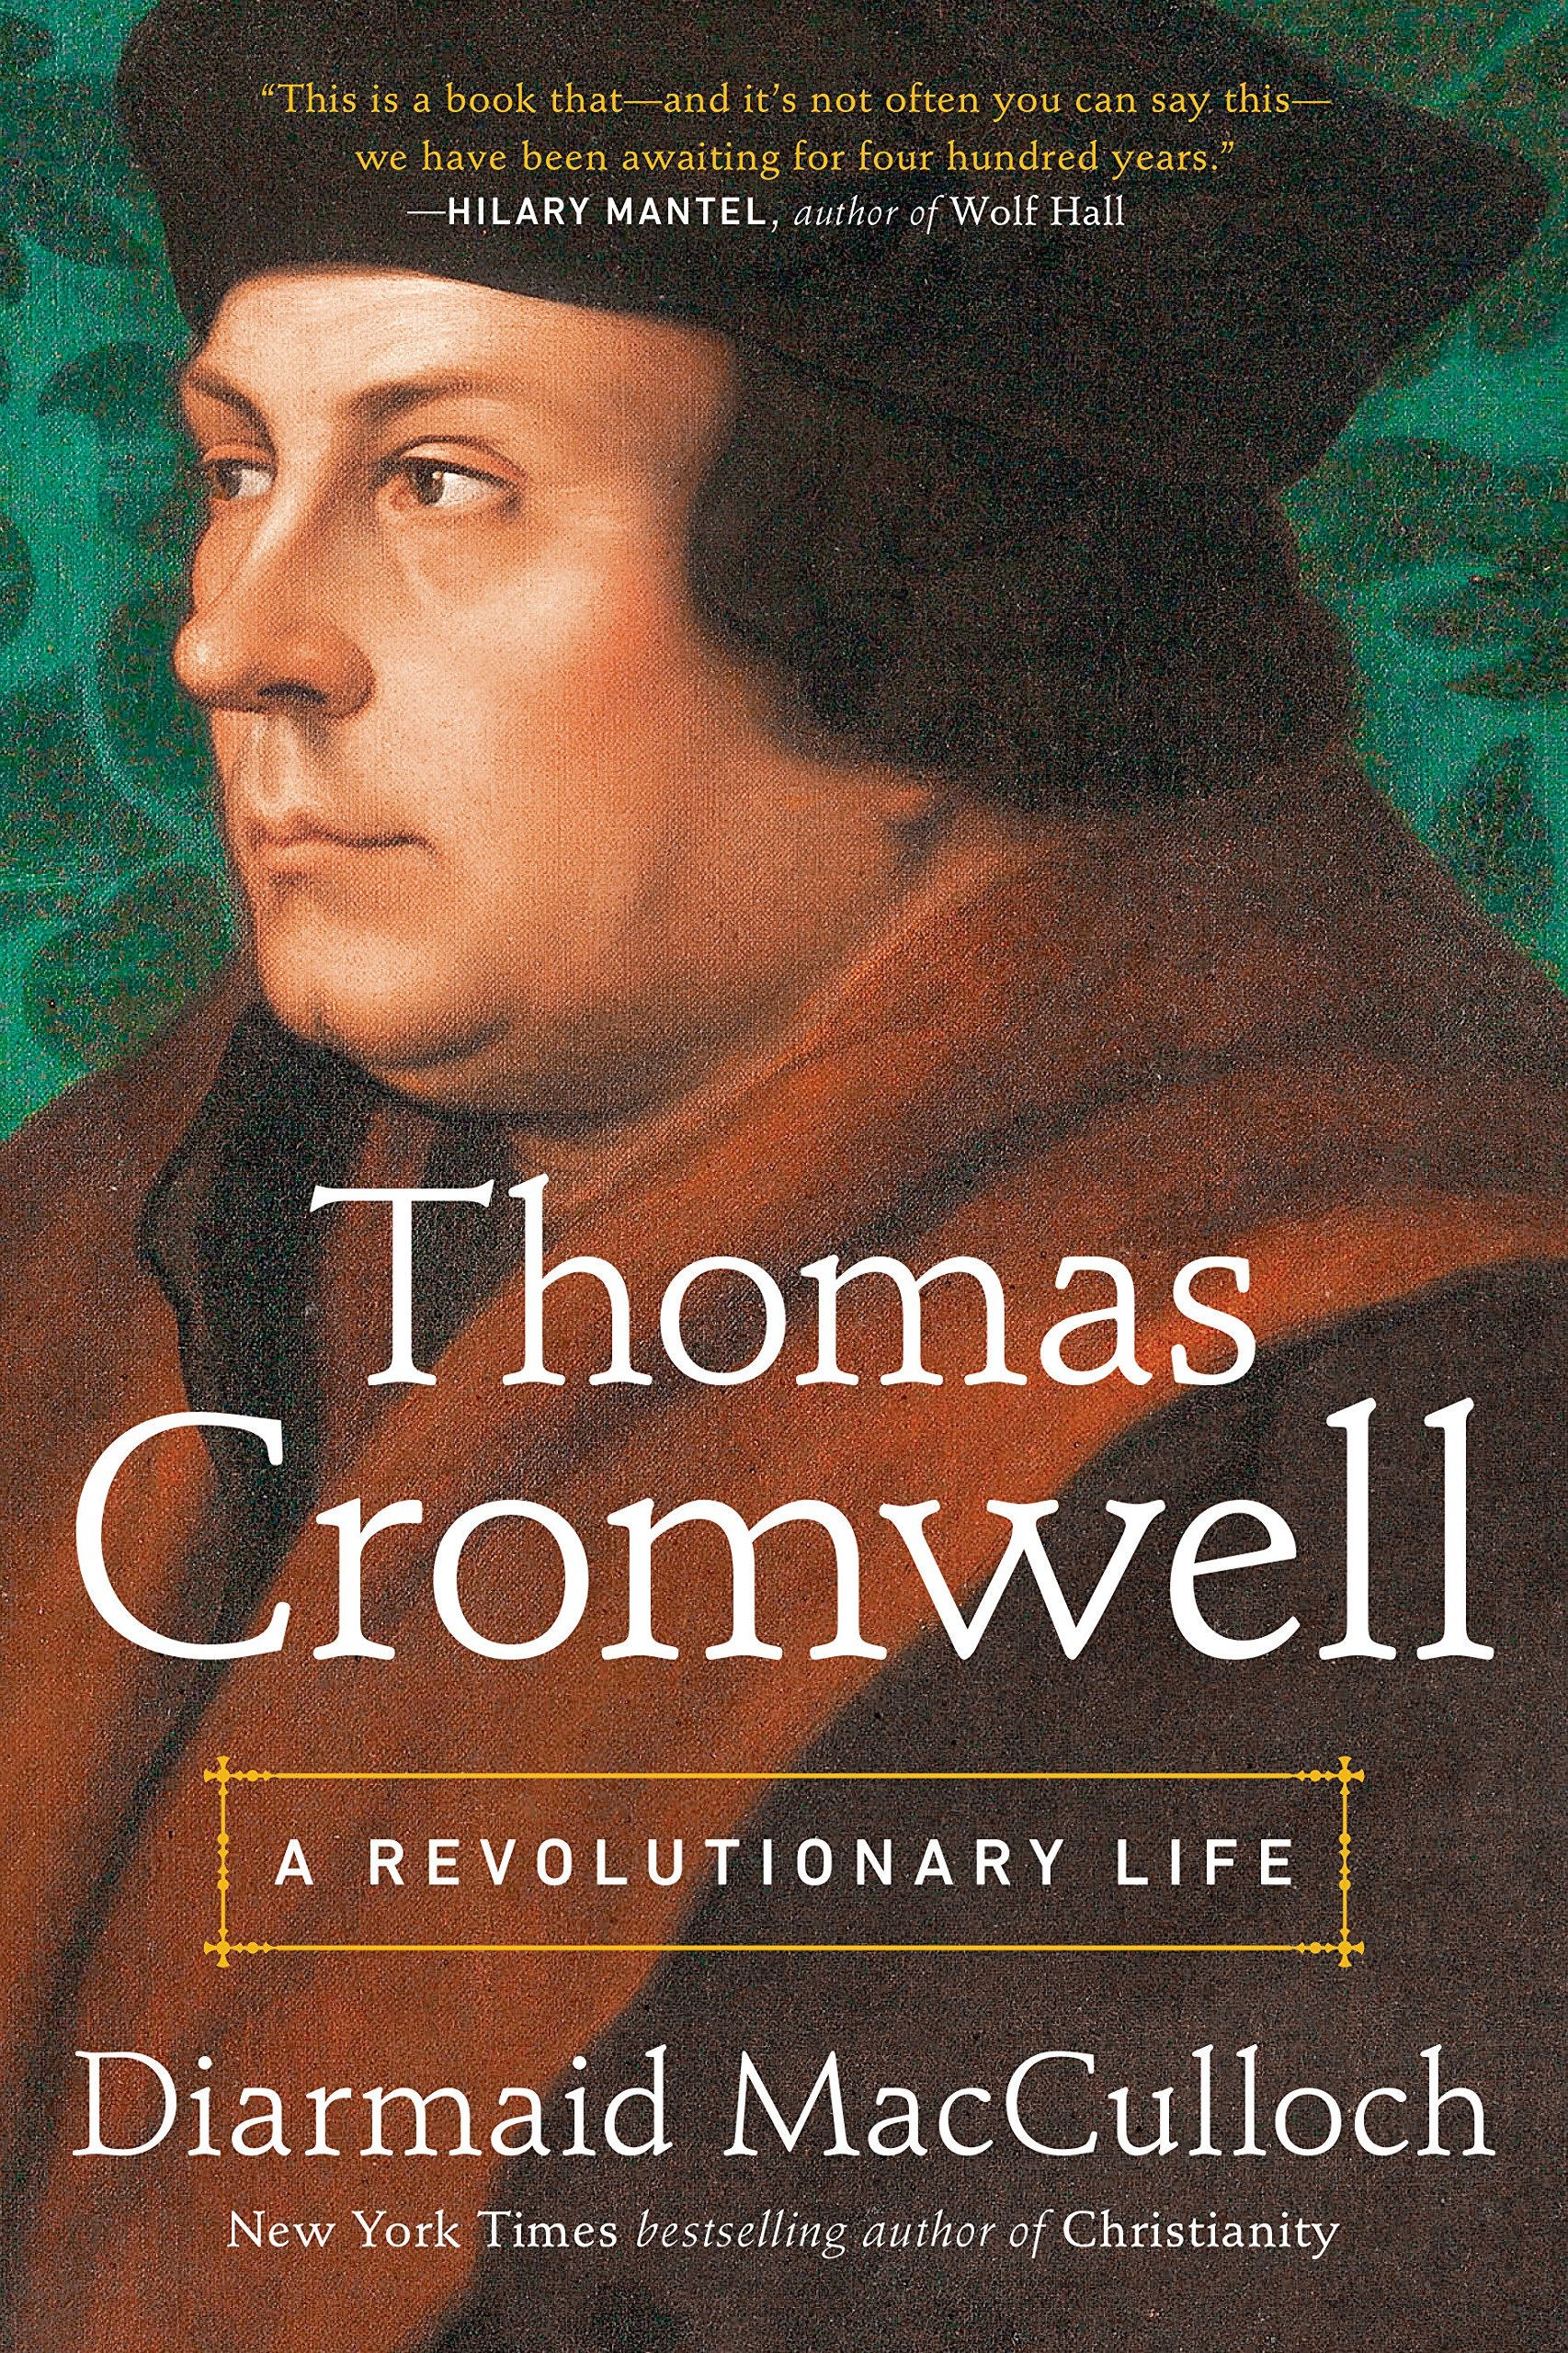 Hilary mantel new cromwell book